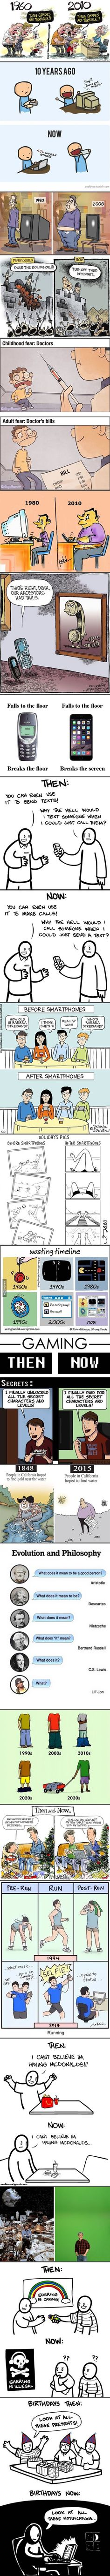 Then vs now - 9GAG